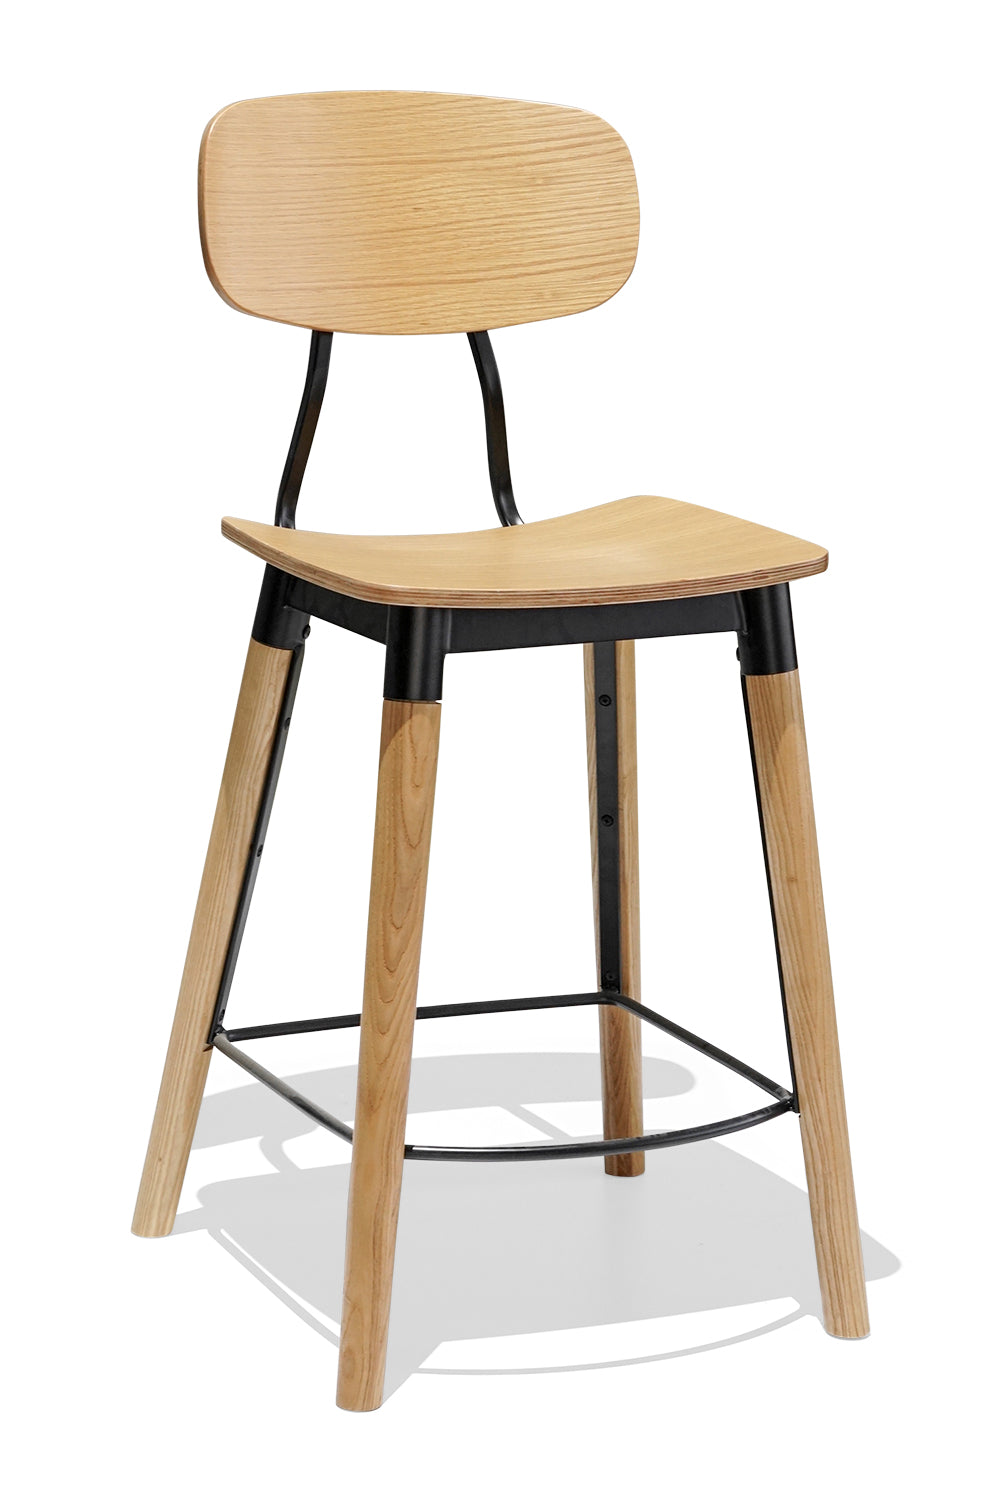 FRENCH INDUSTRIAL bar stool